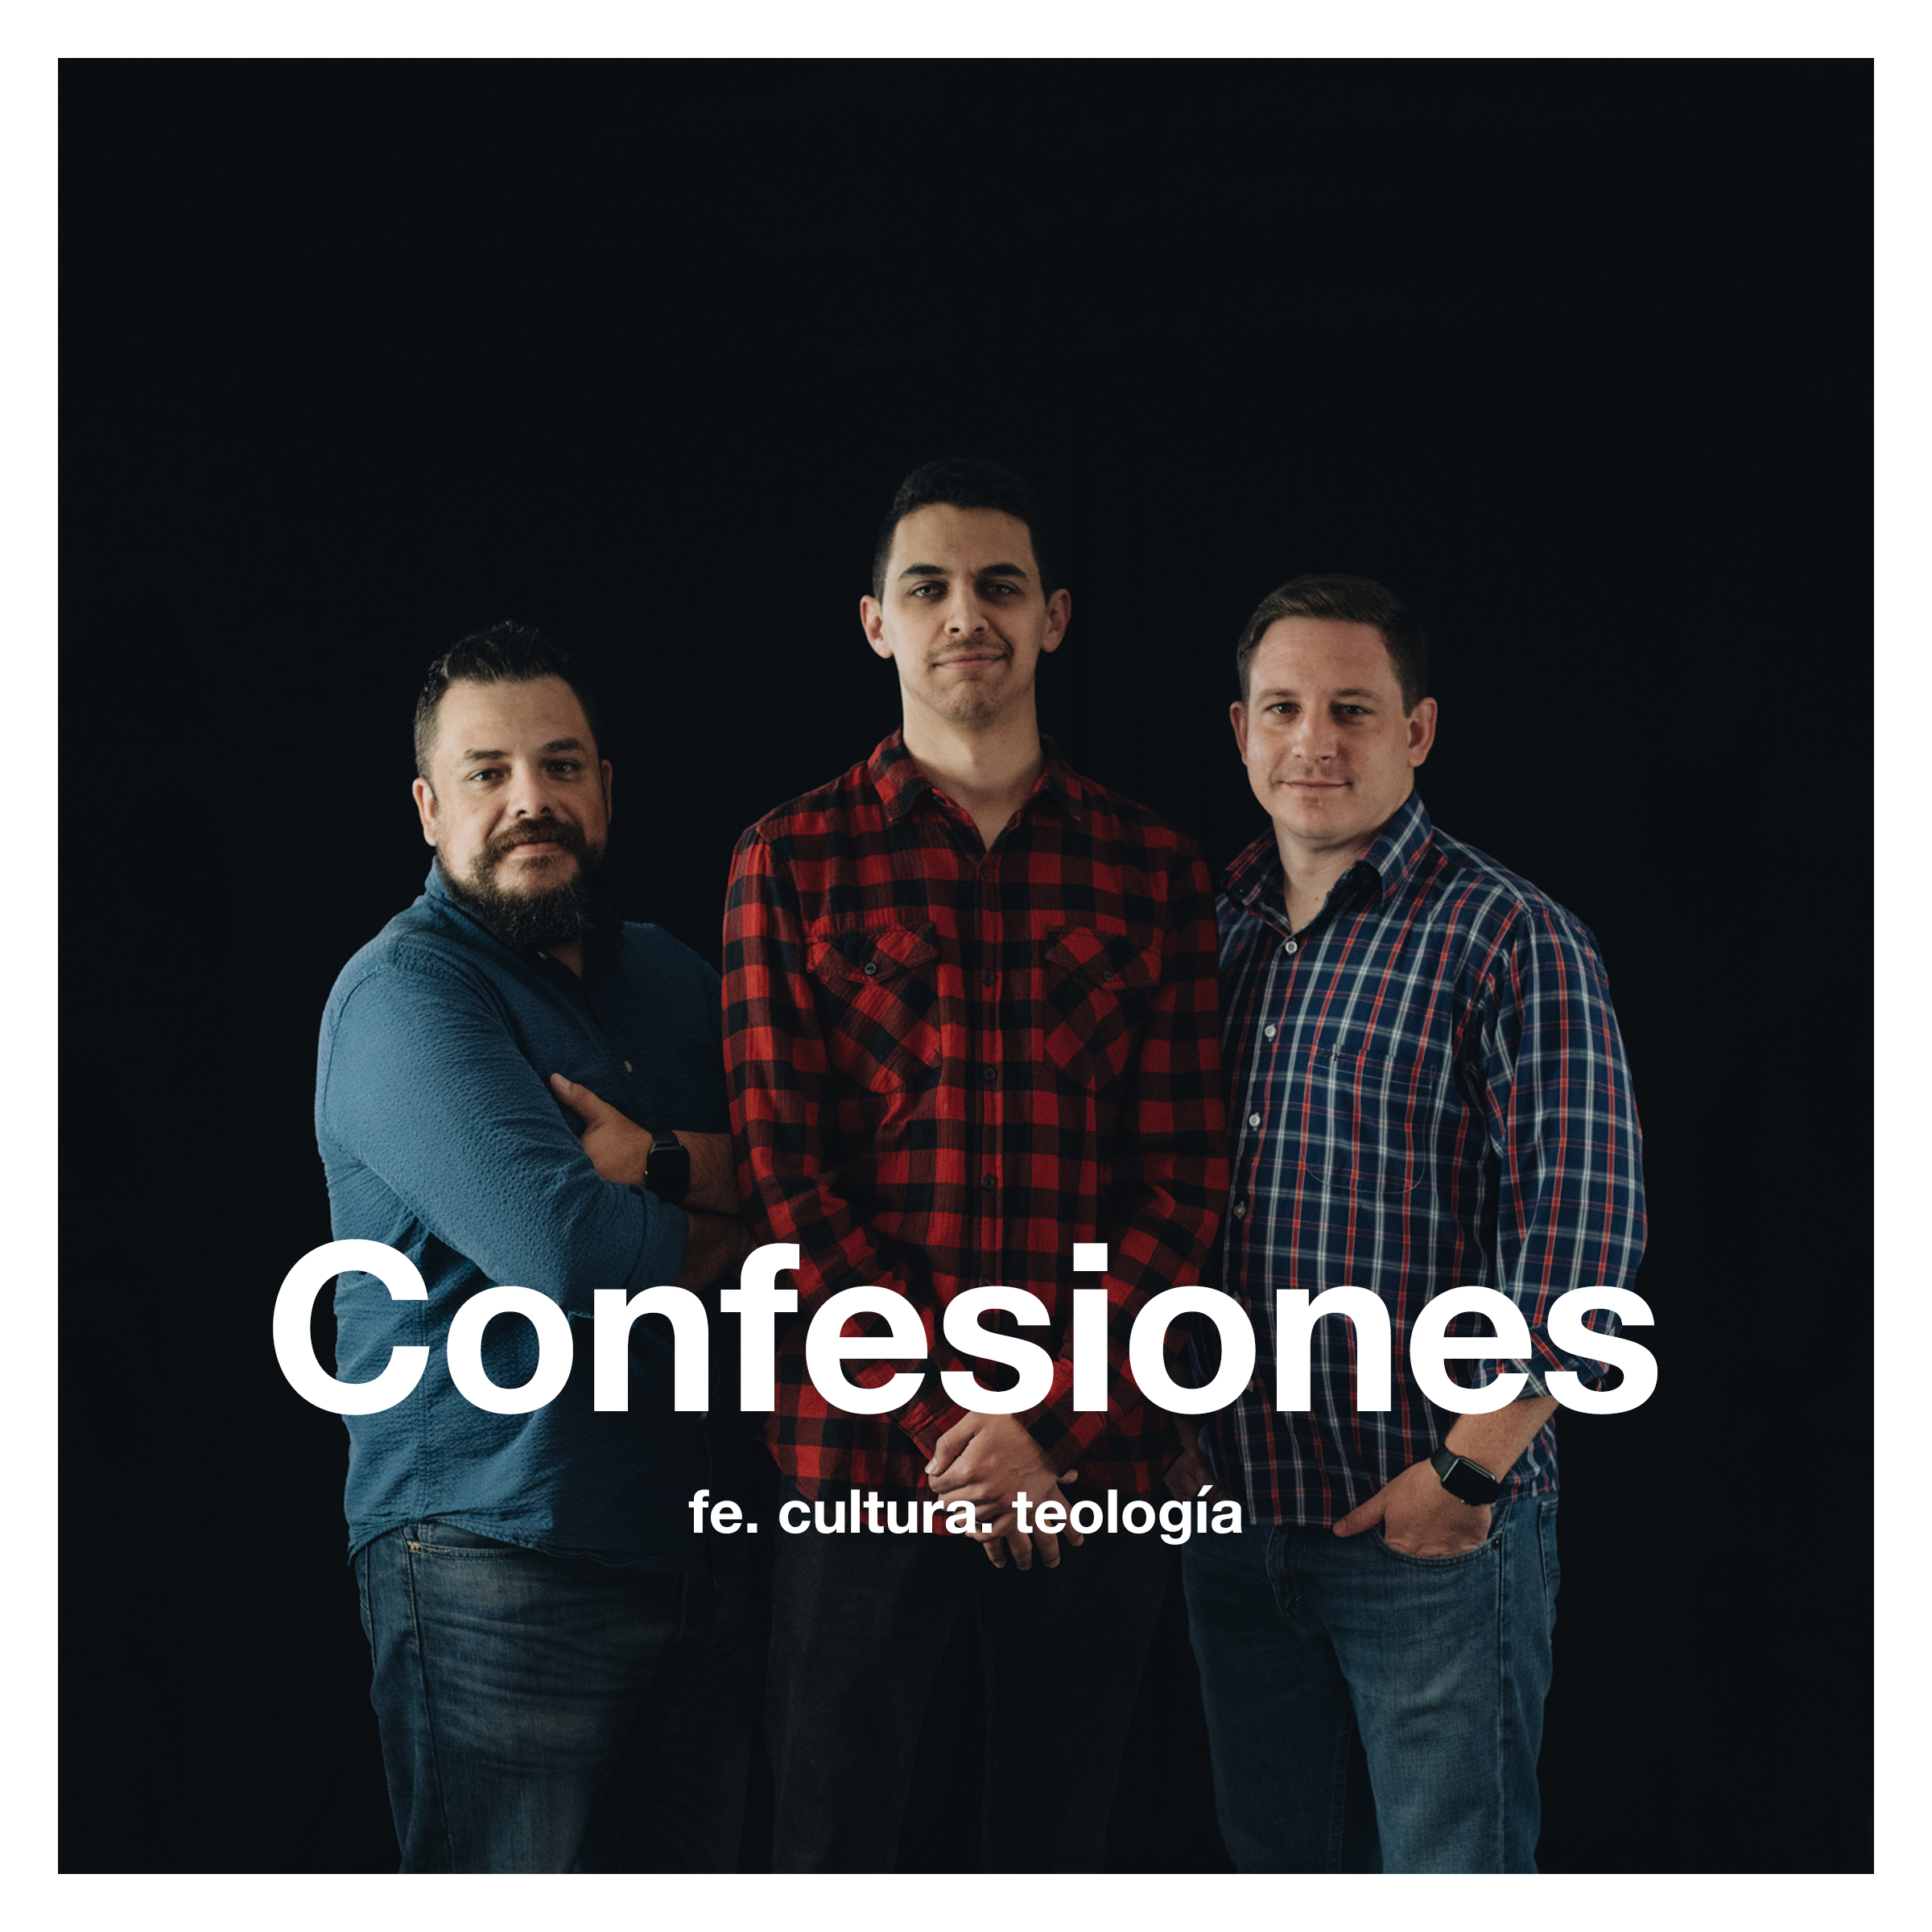 CONFESIONES-NEW-2400x2400.jpg